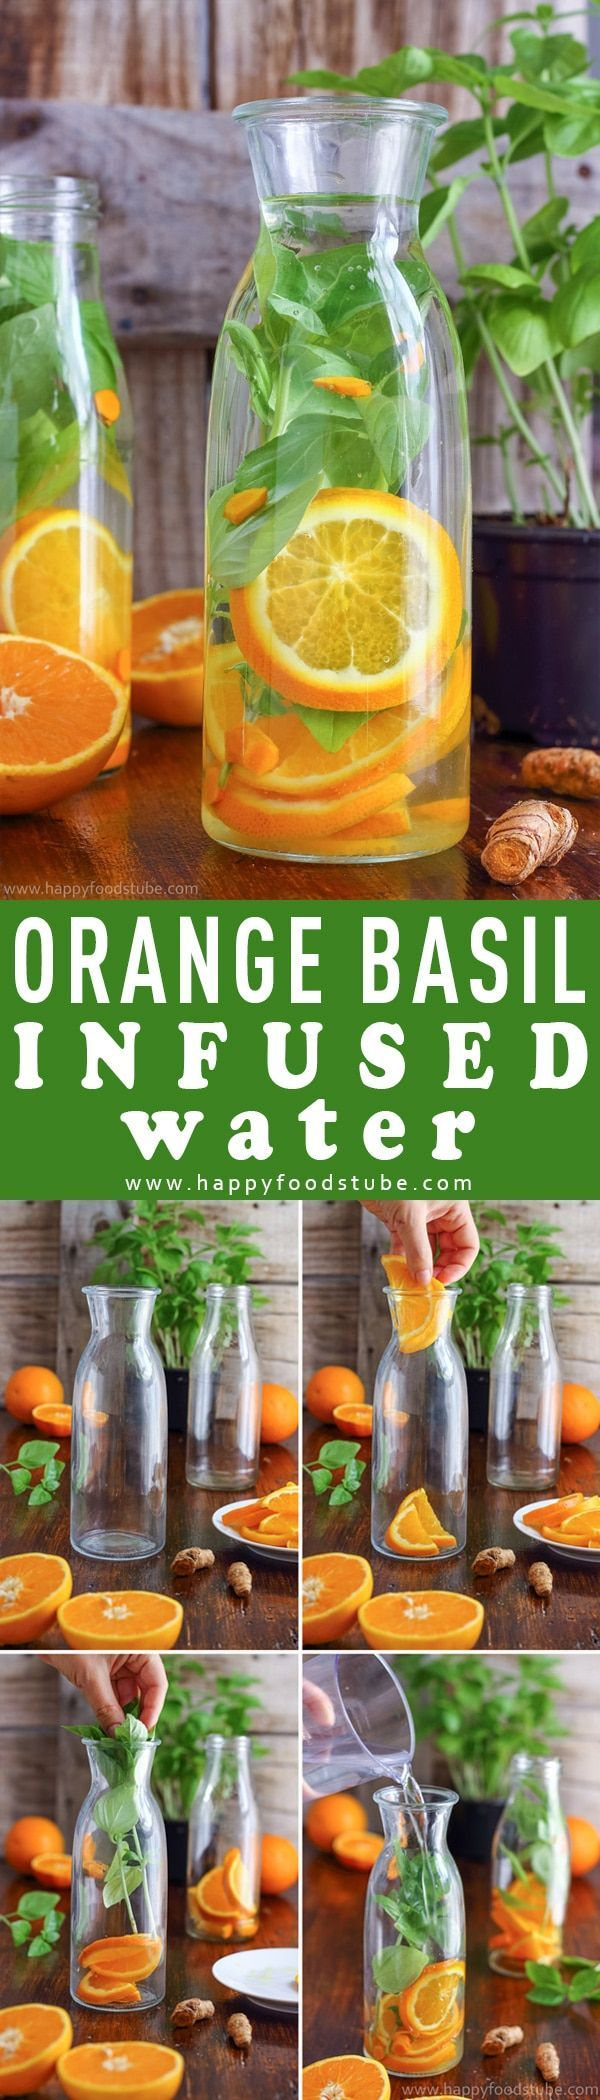 This orange basil infused water is the perfect drink for hot summer days. It's refreshing, tasty and easy to make. Stay hydrated with this healthy flavored water. Body detox and cleanse with infused water. Only 3 ingredients - orange, basil and turmeric v